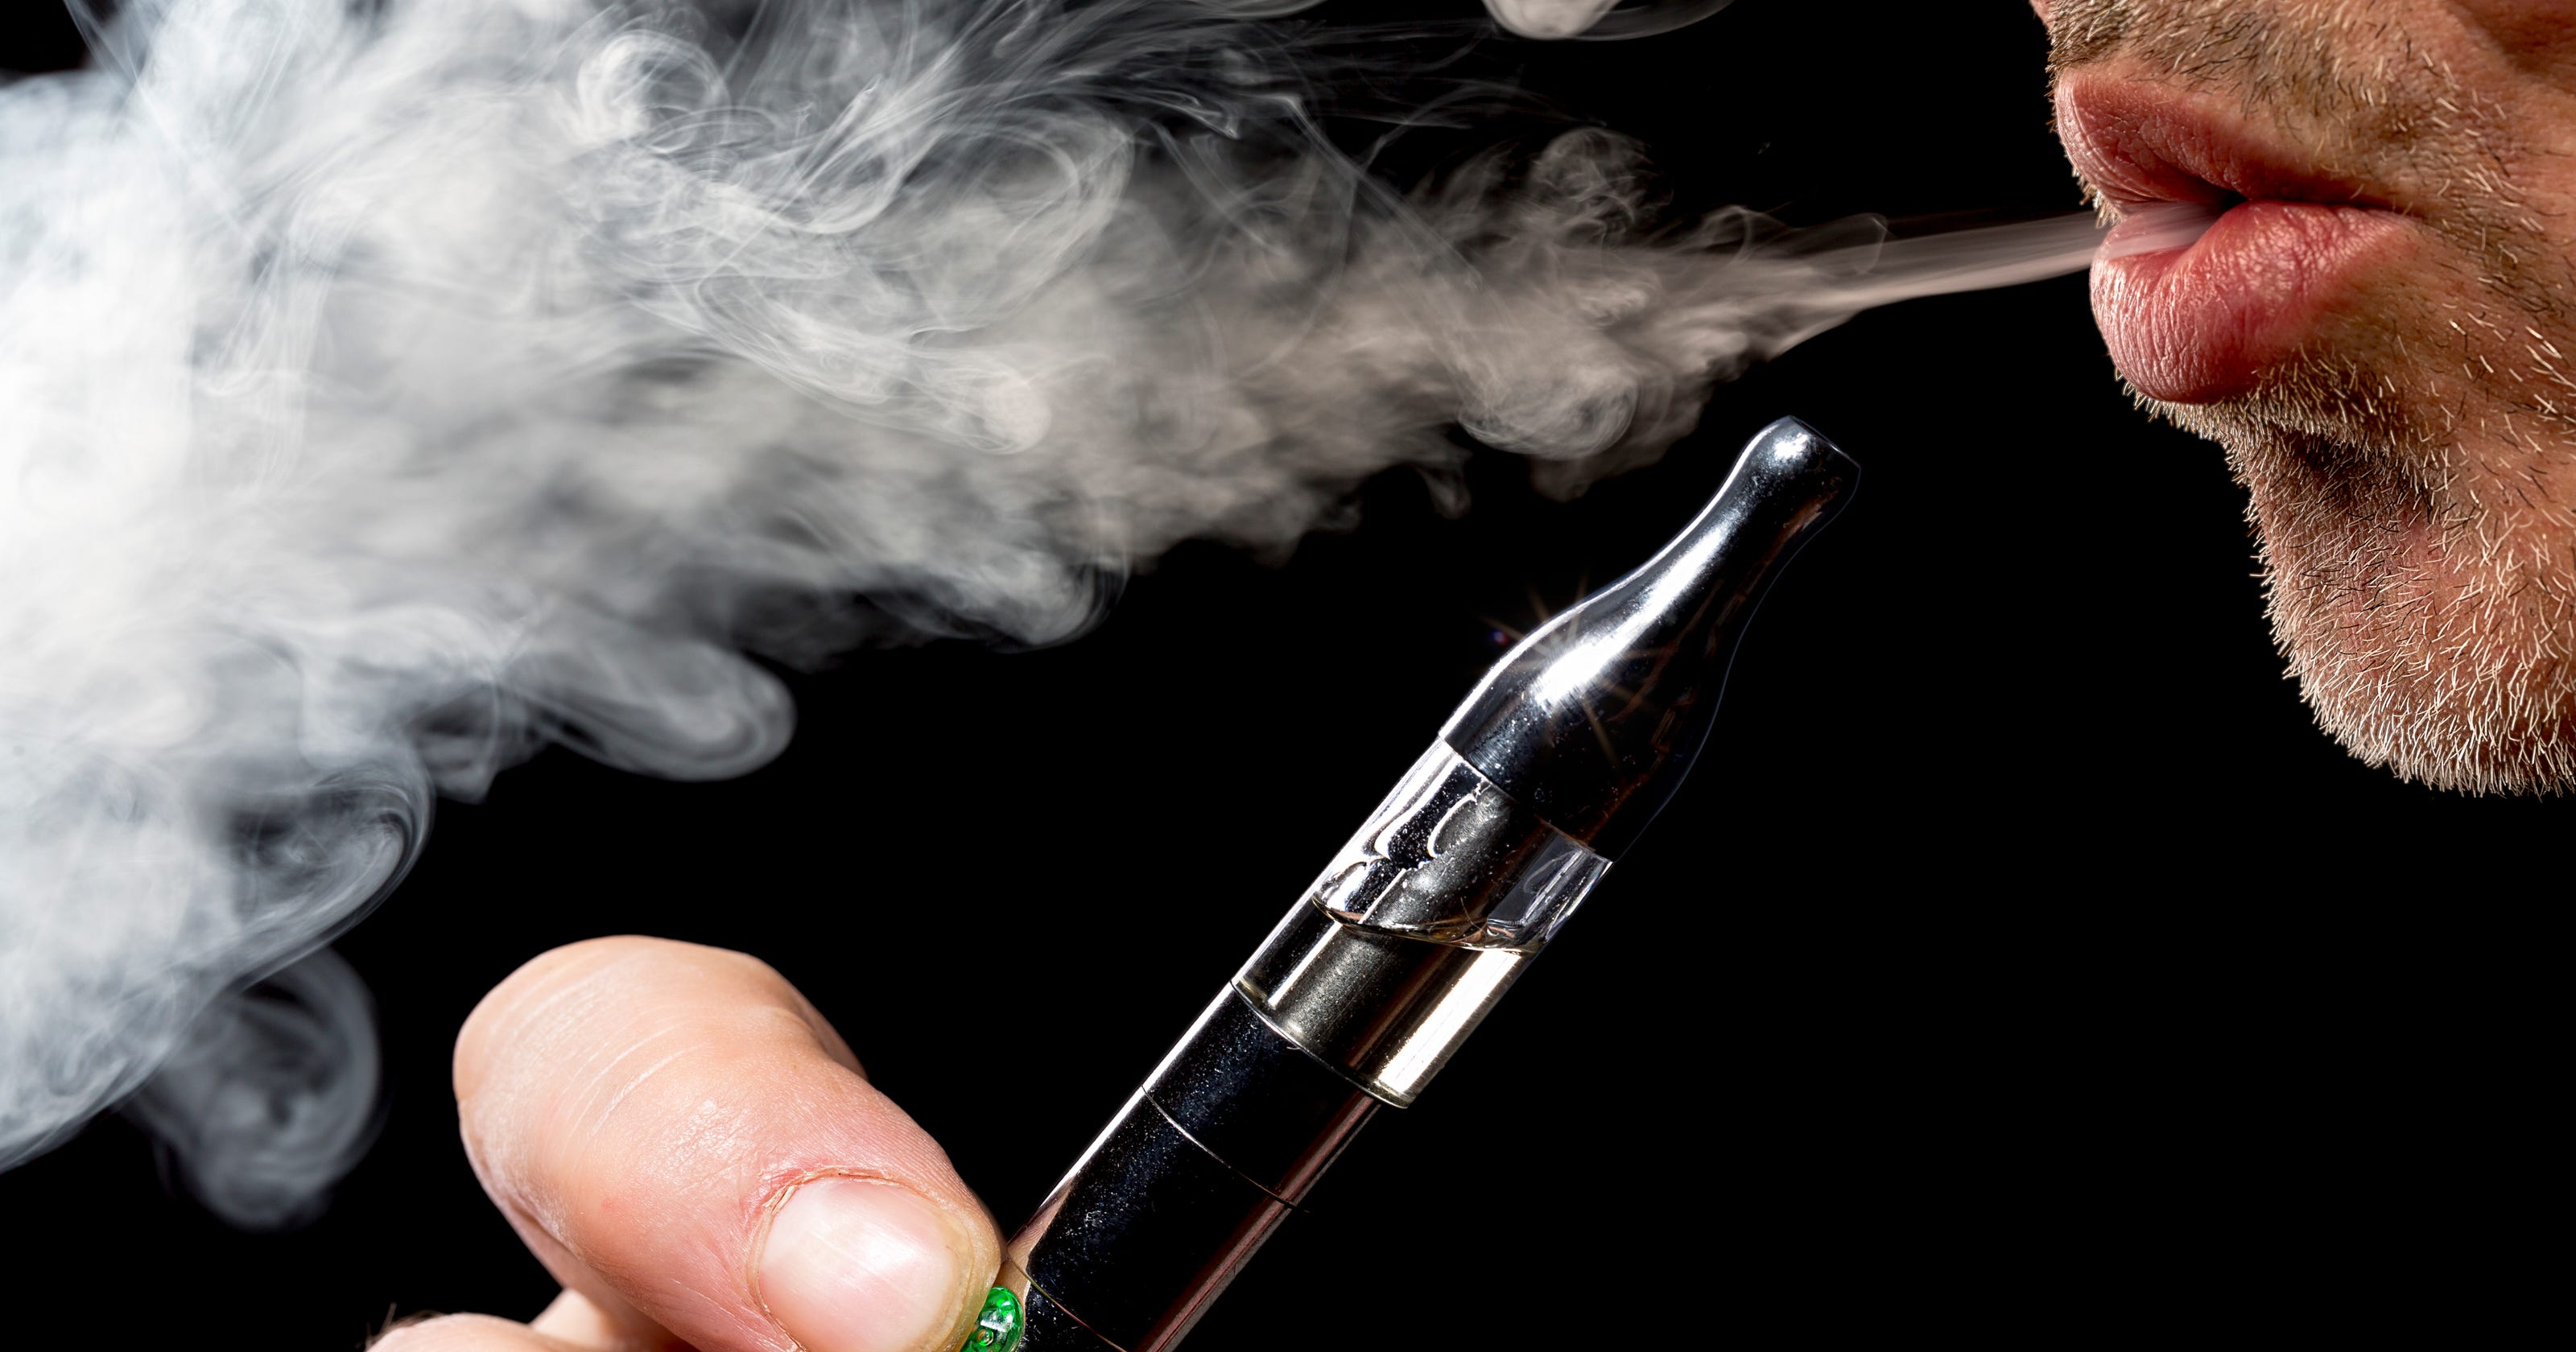 Michigan bans flavored vaping products: What to know